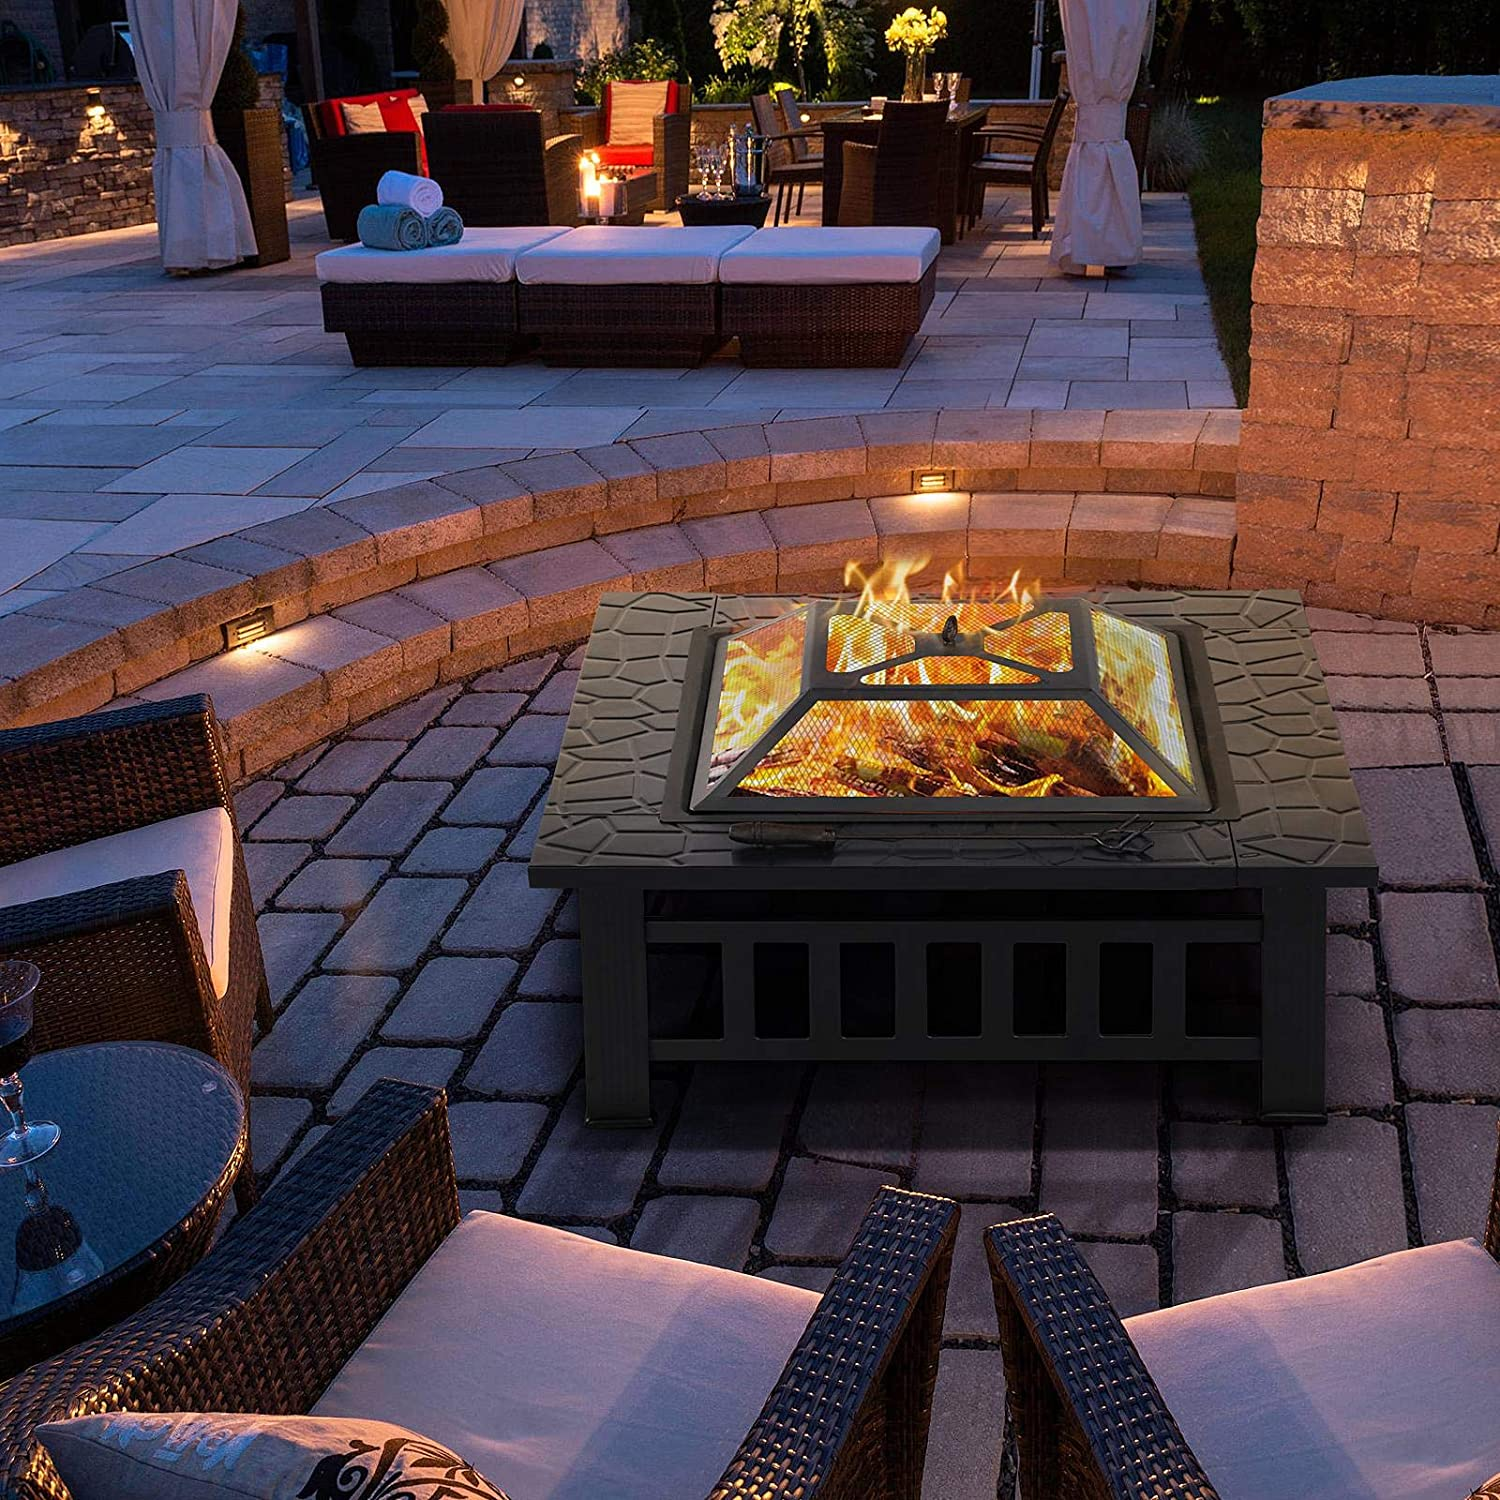 YAHEETECH 32in Outdoor Metal Firepit Square Table Backyard Patio Garden Stove Wood Burning Fire Pit with Spark Screen, Log Poker and Cover: Sports & Outdoors